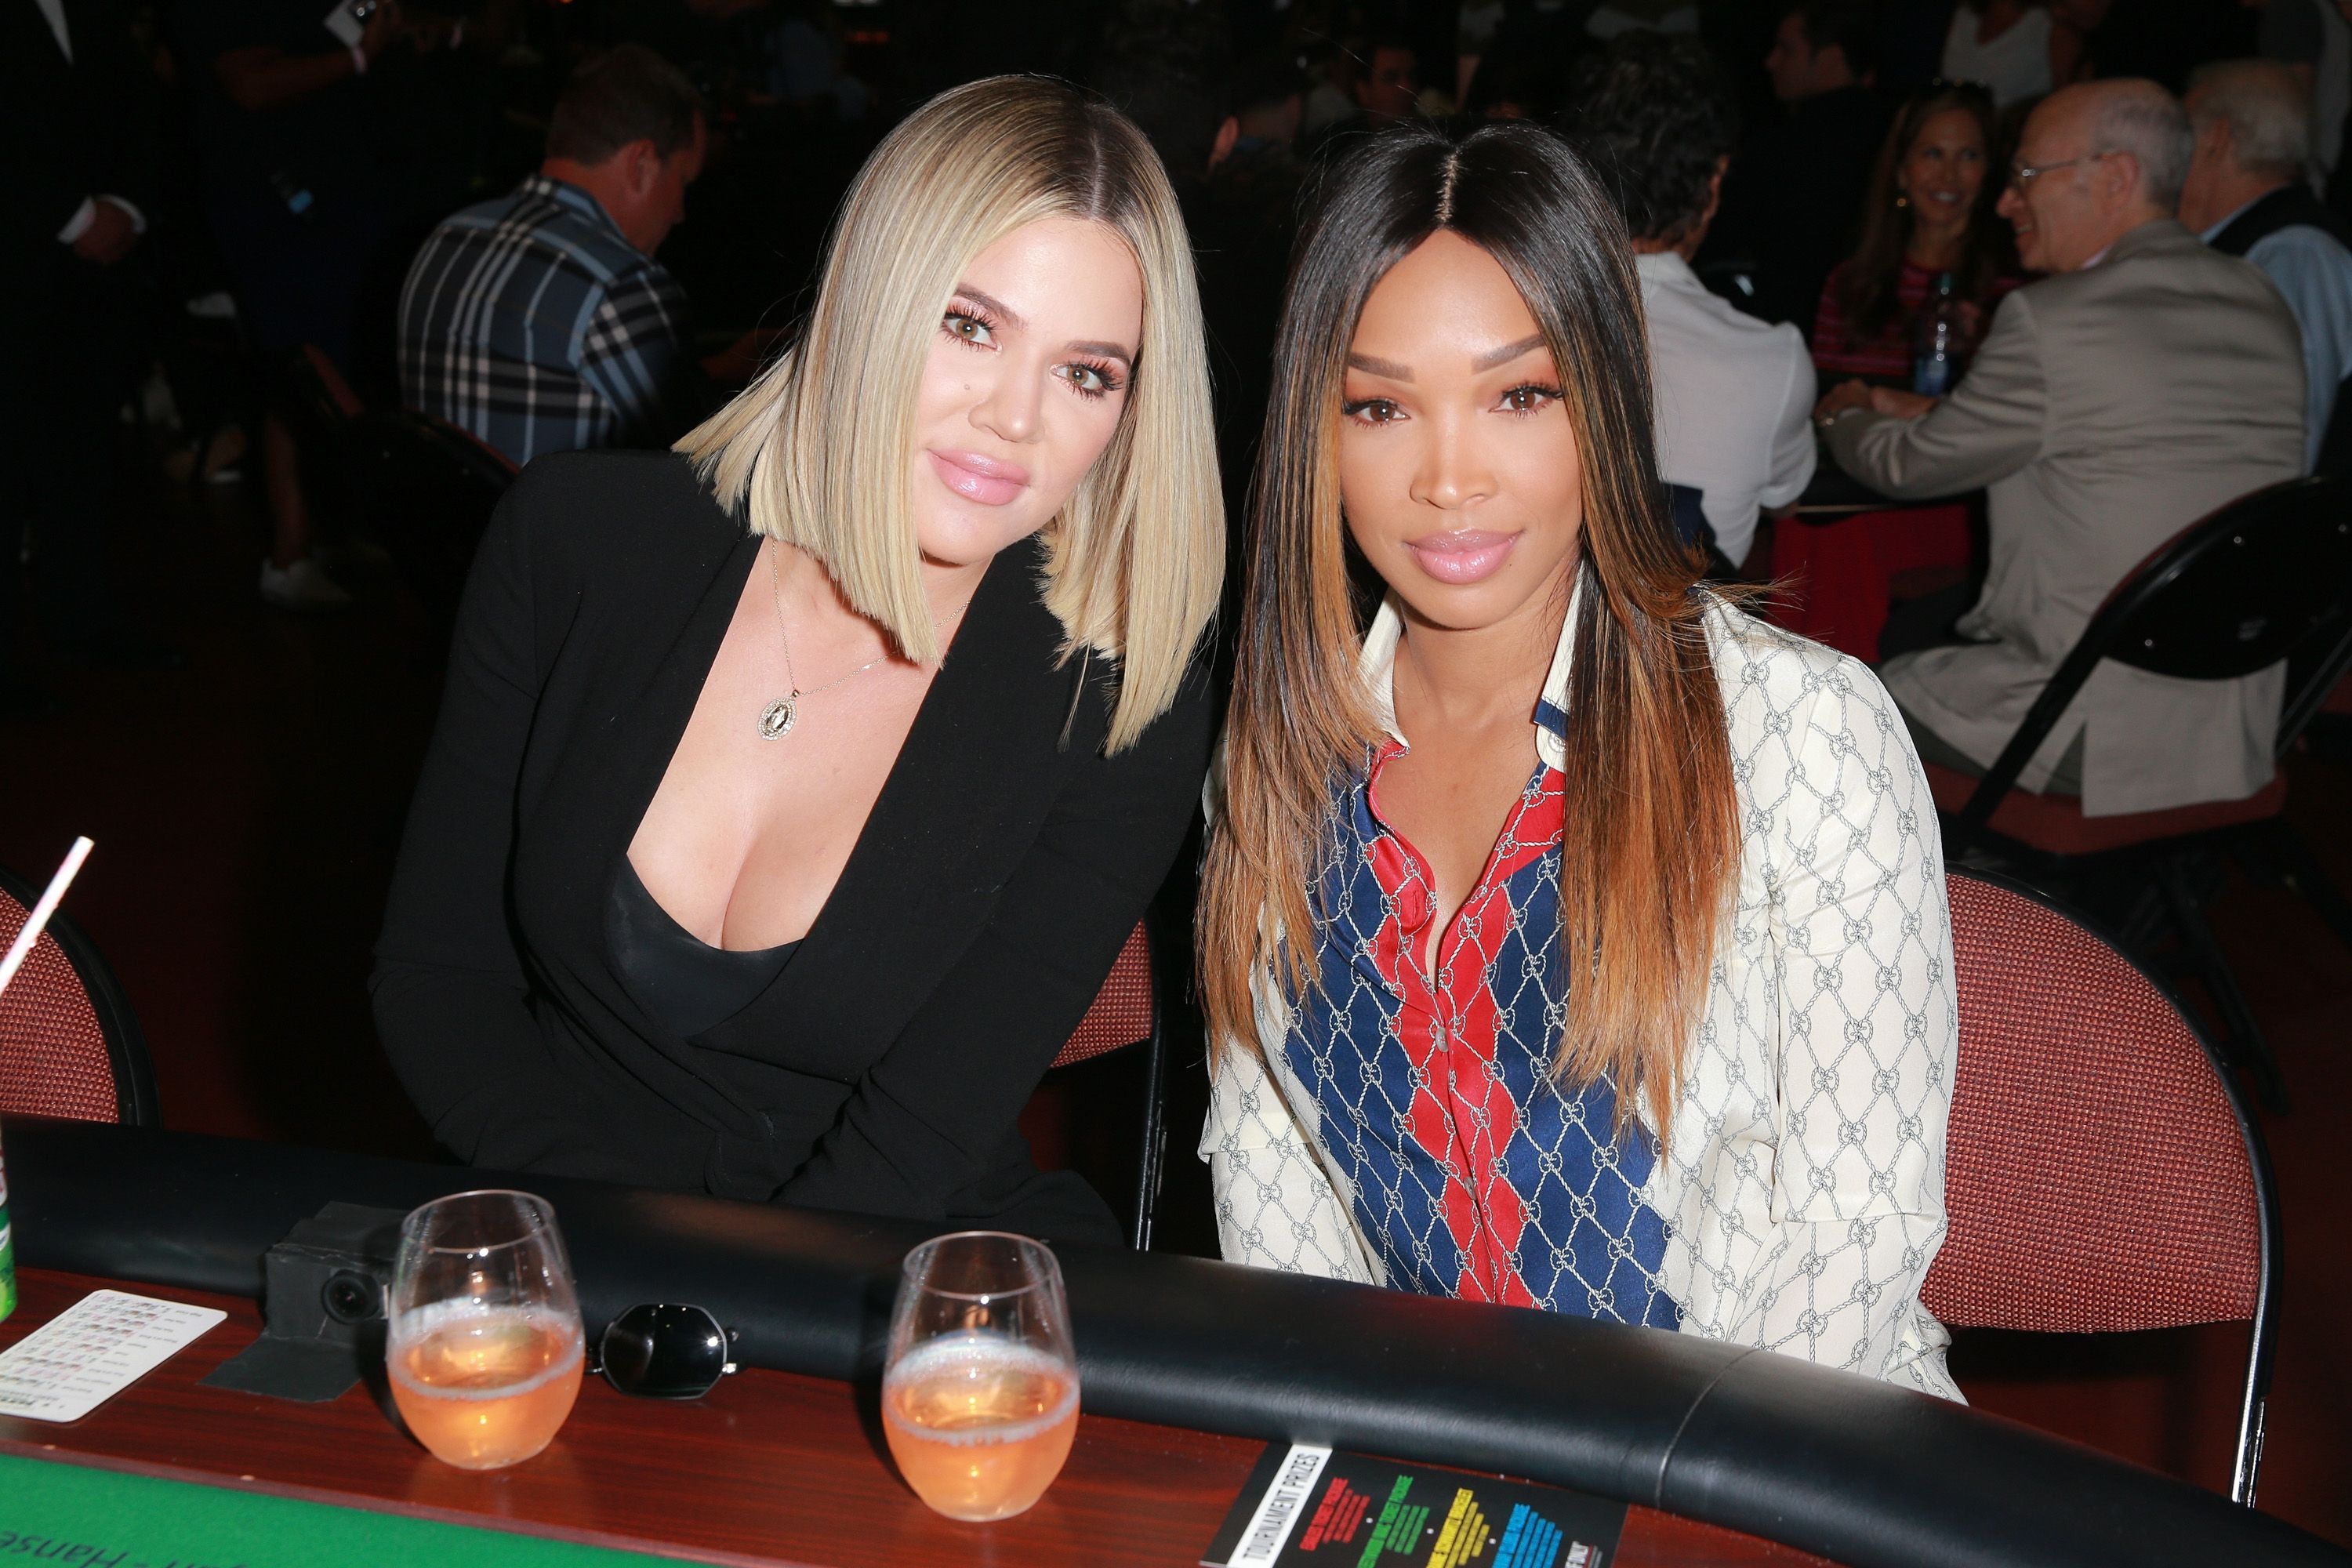 """Khloe Kardashian and Malika Haqq during the first annual """"If Only"""" Texas Hold'em charity poker tournament benefiting City of Hope at The Forum on July 29, 2018 in Inglewood, California. 